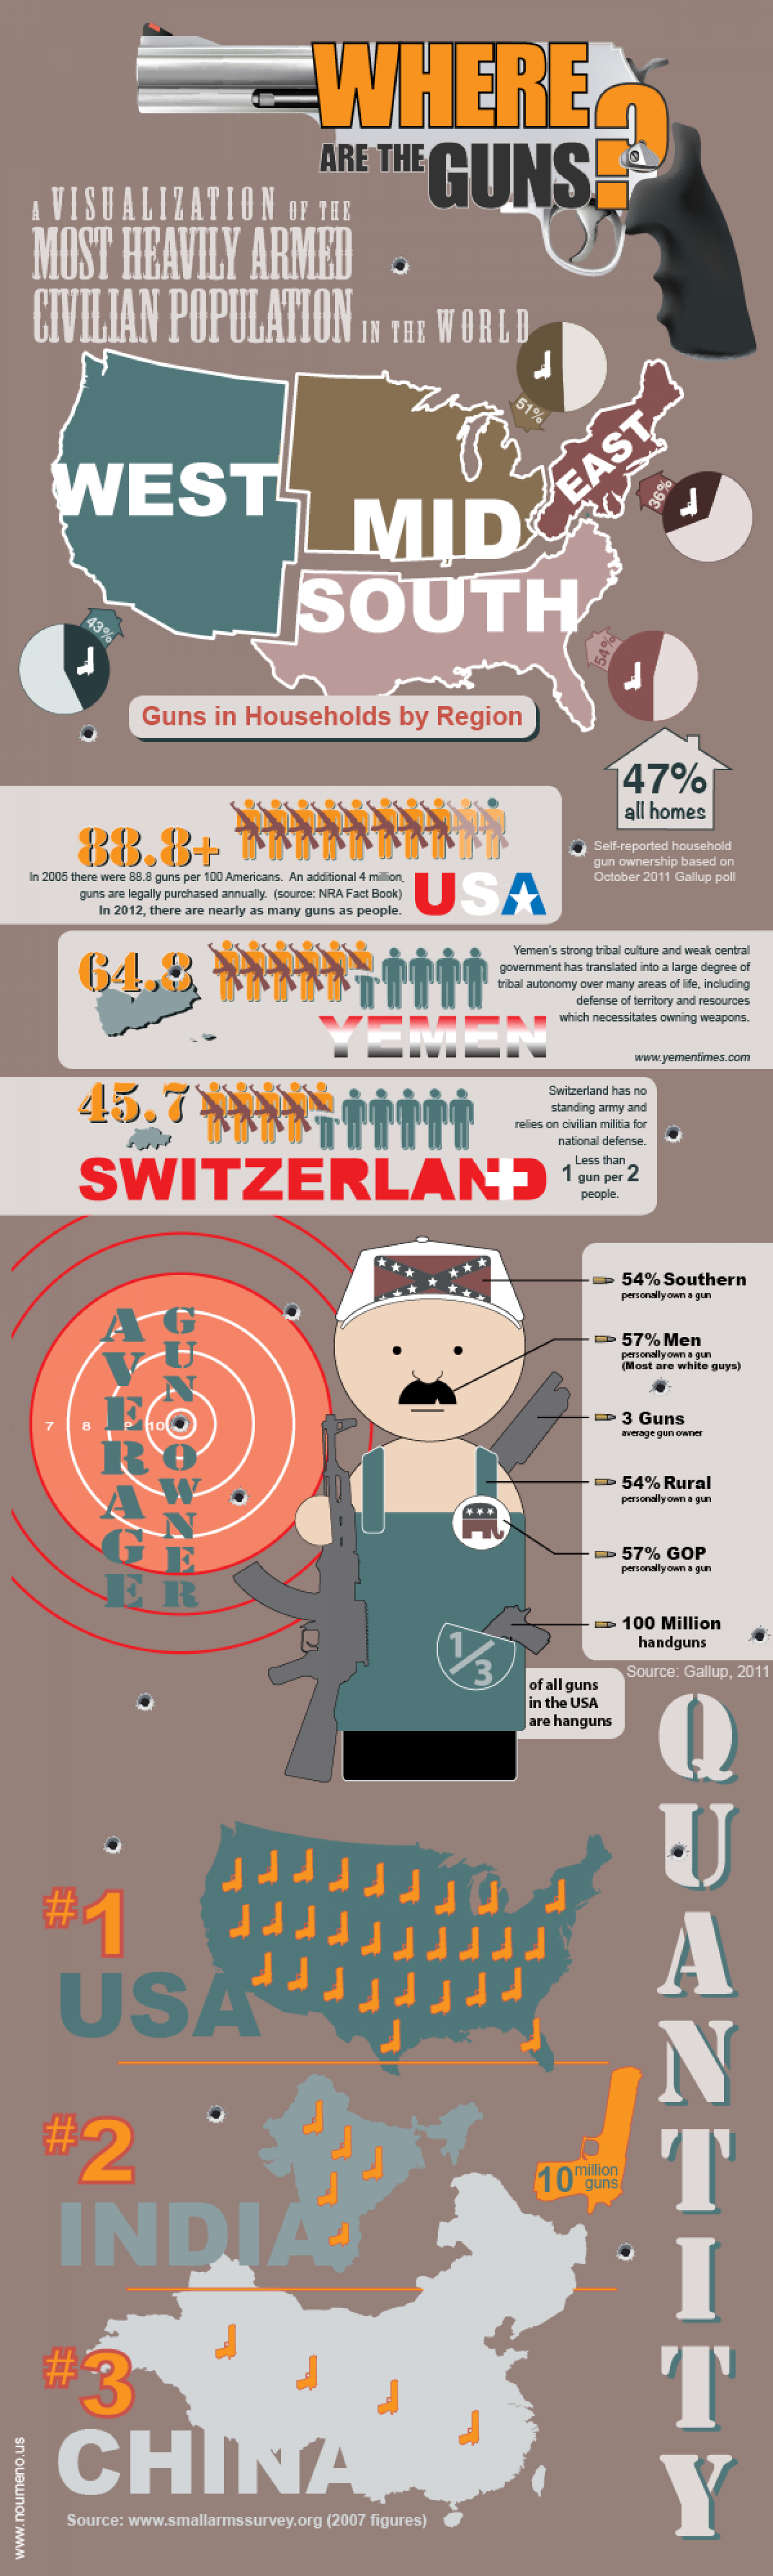 Where are the guns? Infographic